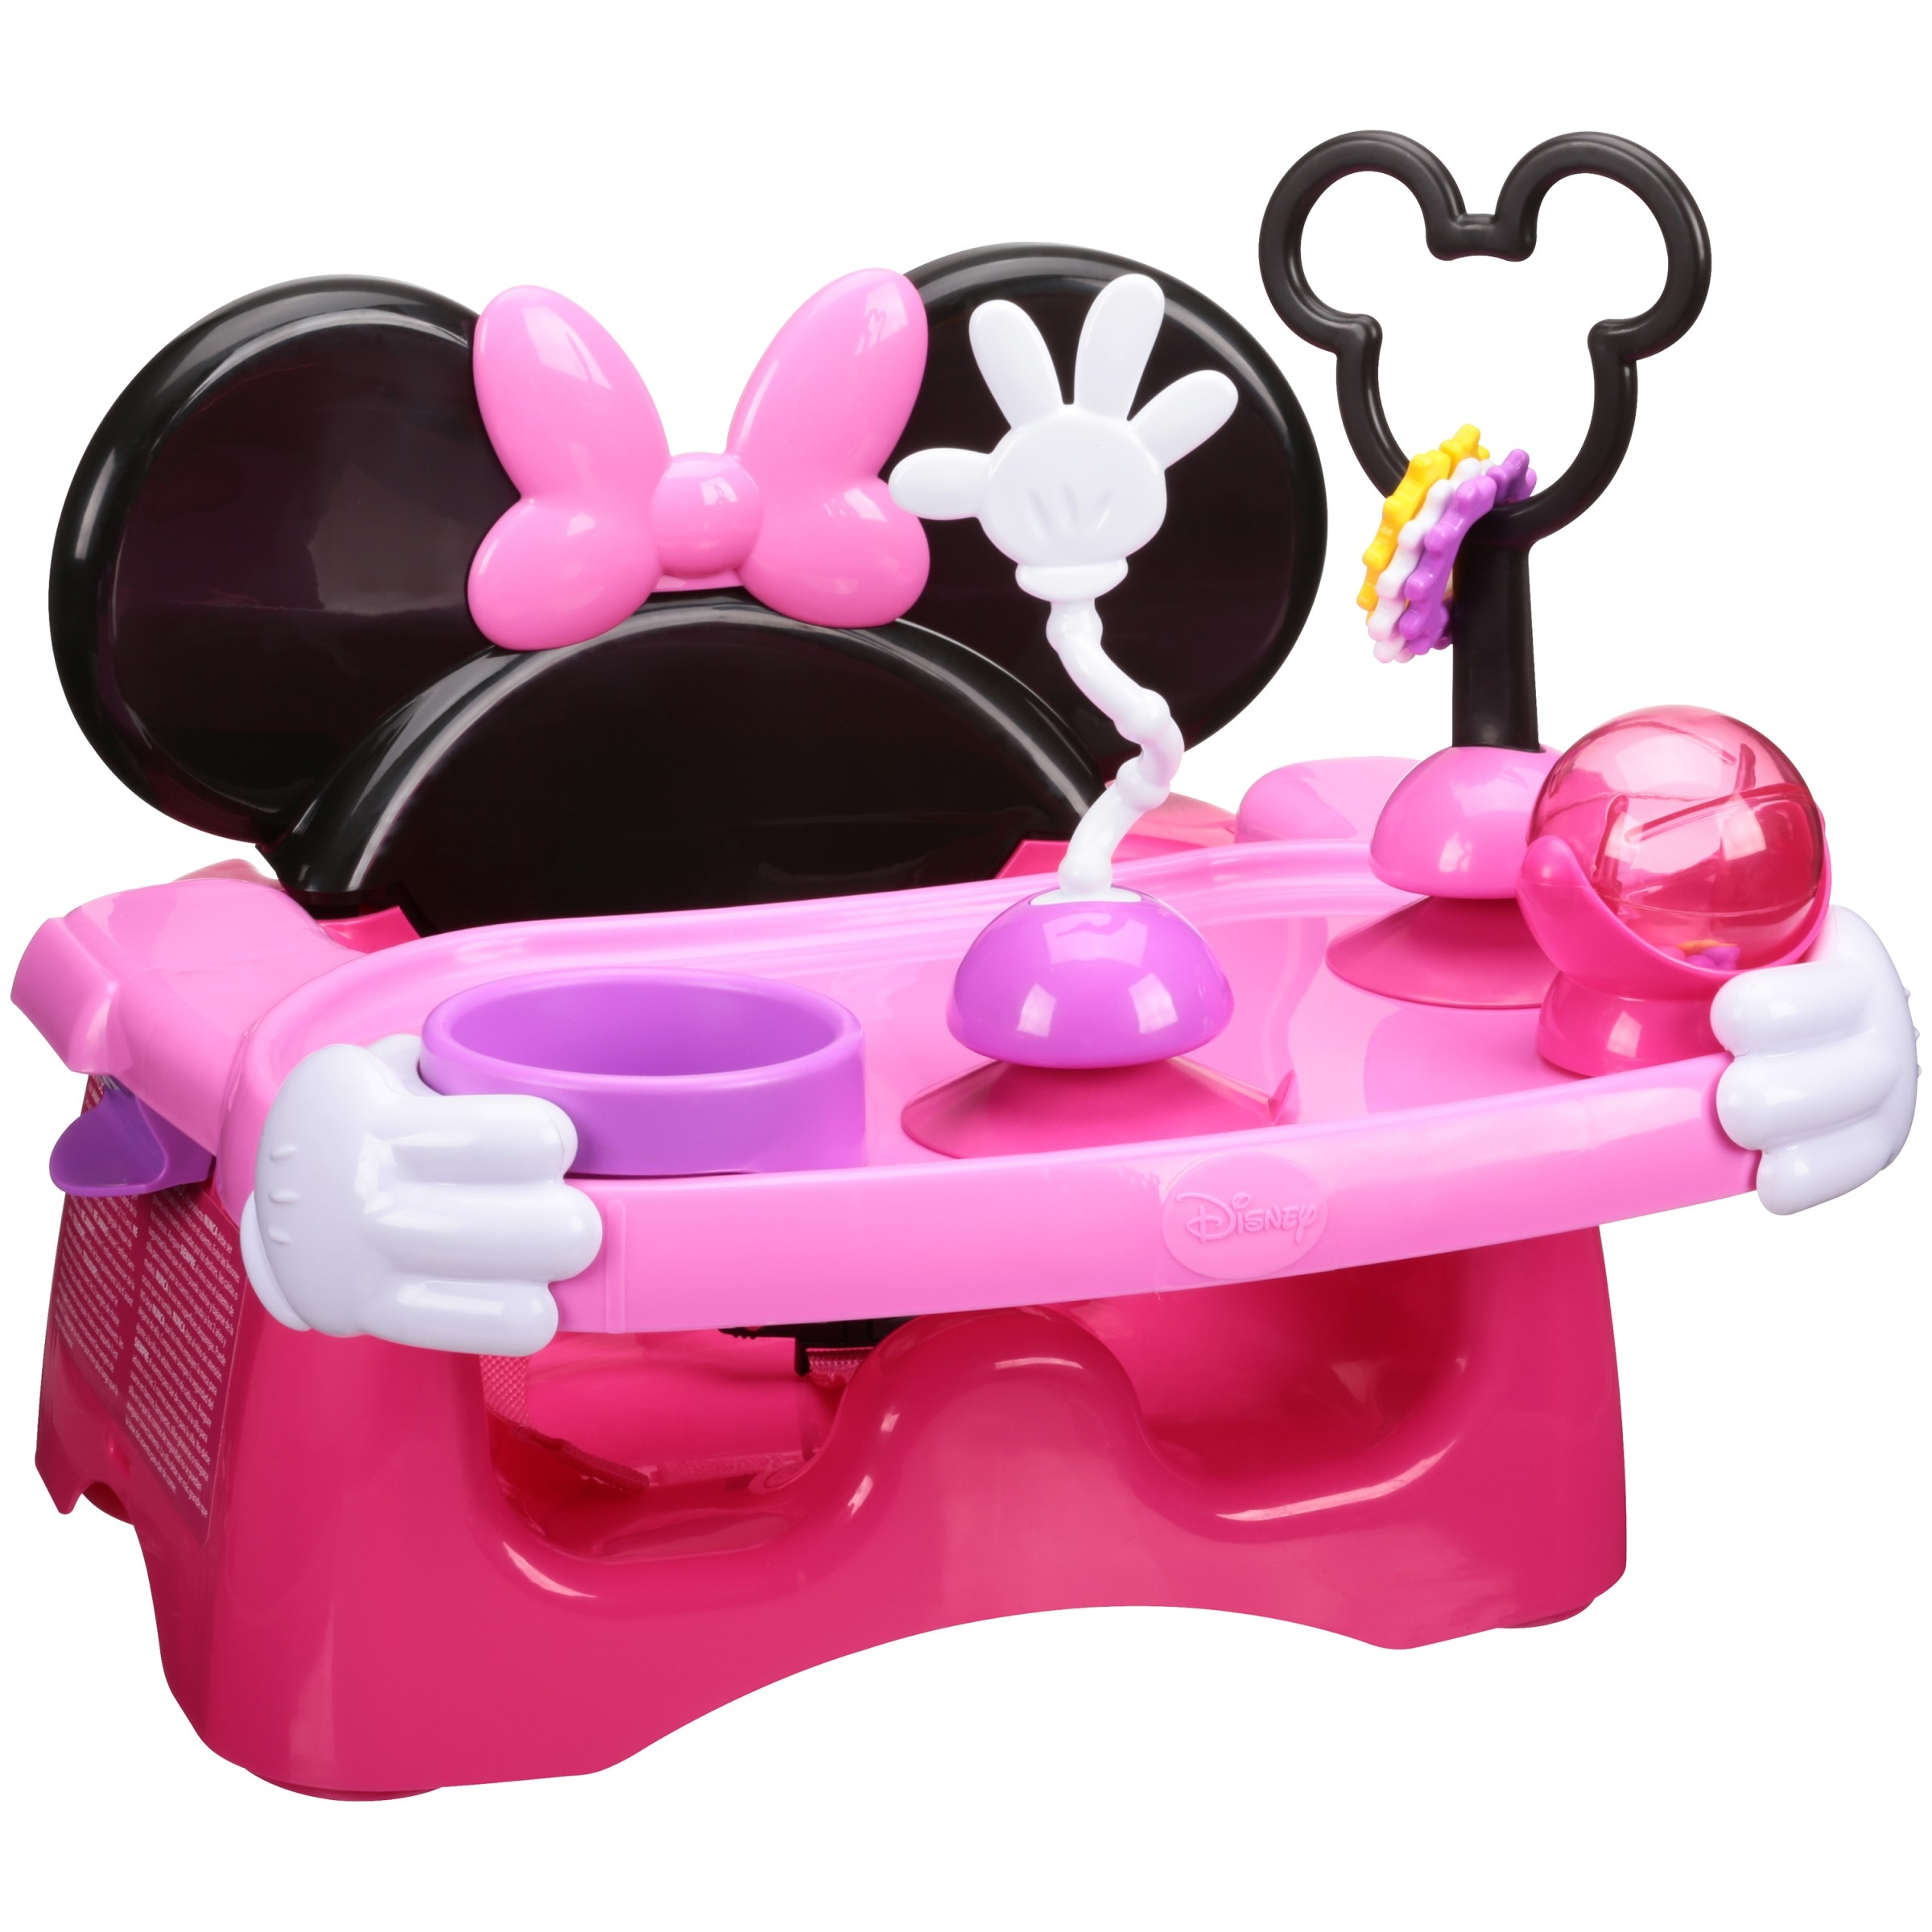 The First Years Disney Minnie Mouse Helping Hands Feeding & Activity Set Hair Chair 7 pc Box